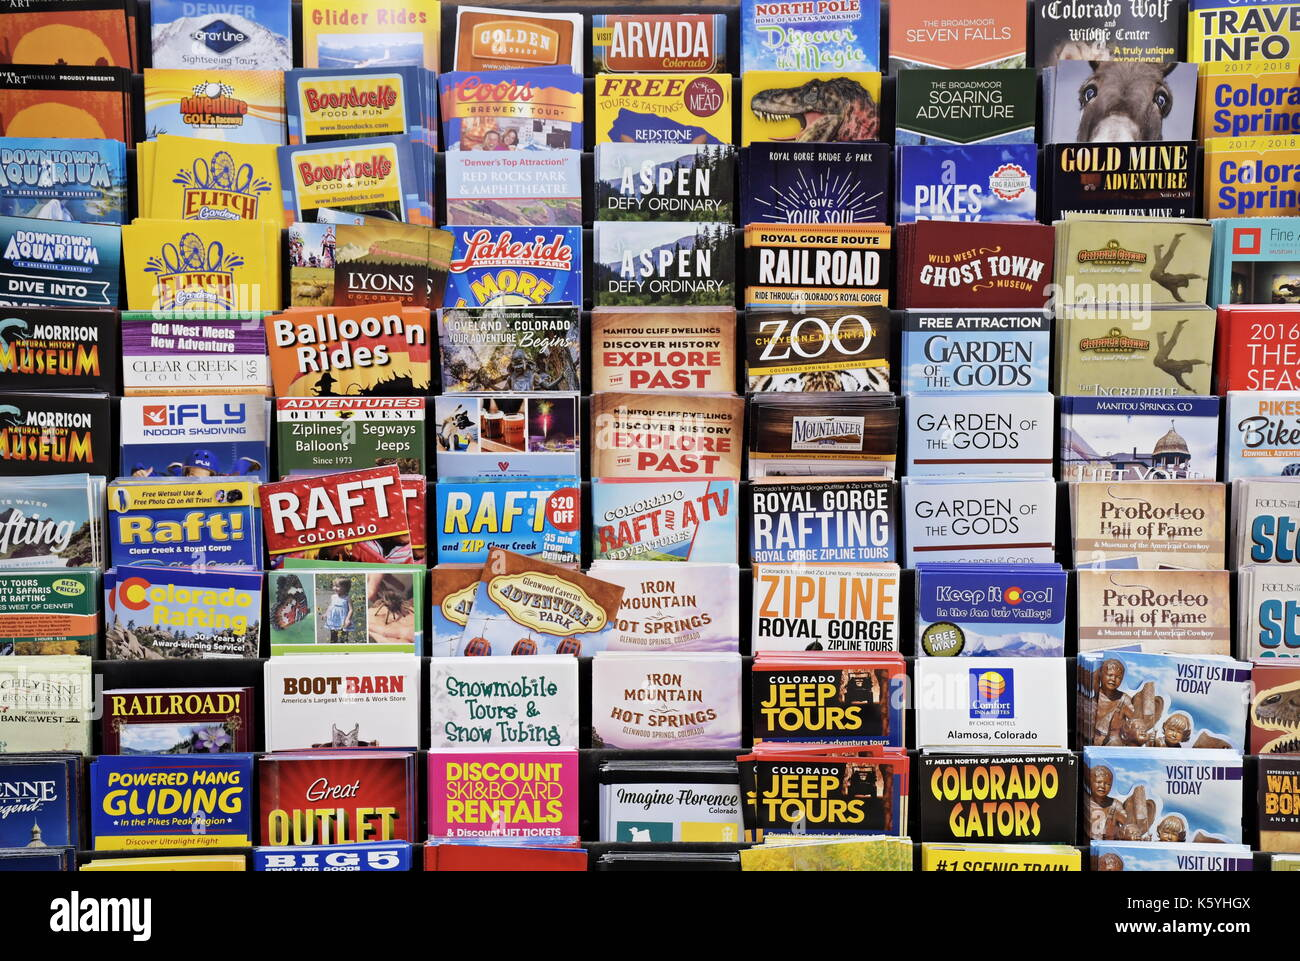 Colorful Colorado Tourist Brochures arranged in a rack - Stock Image